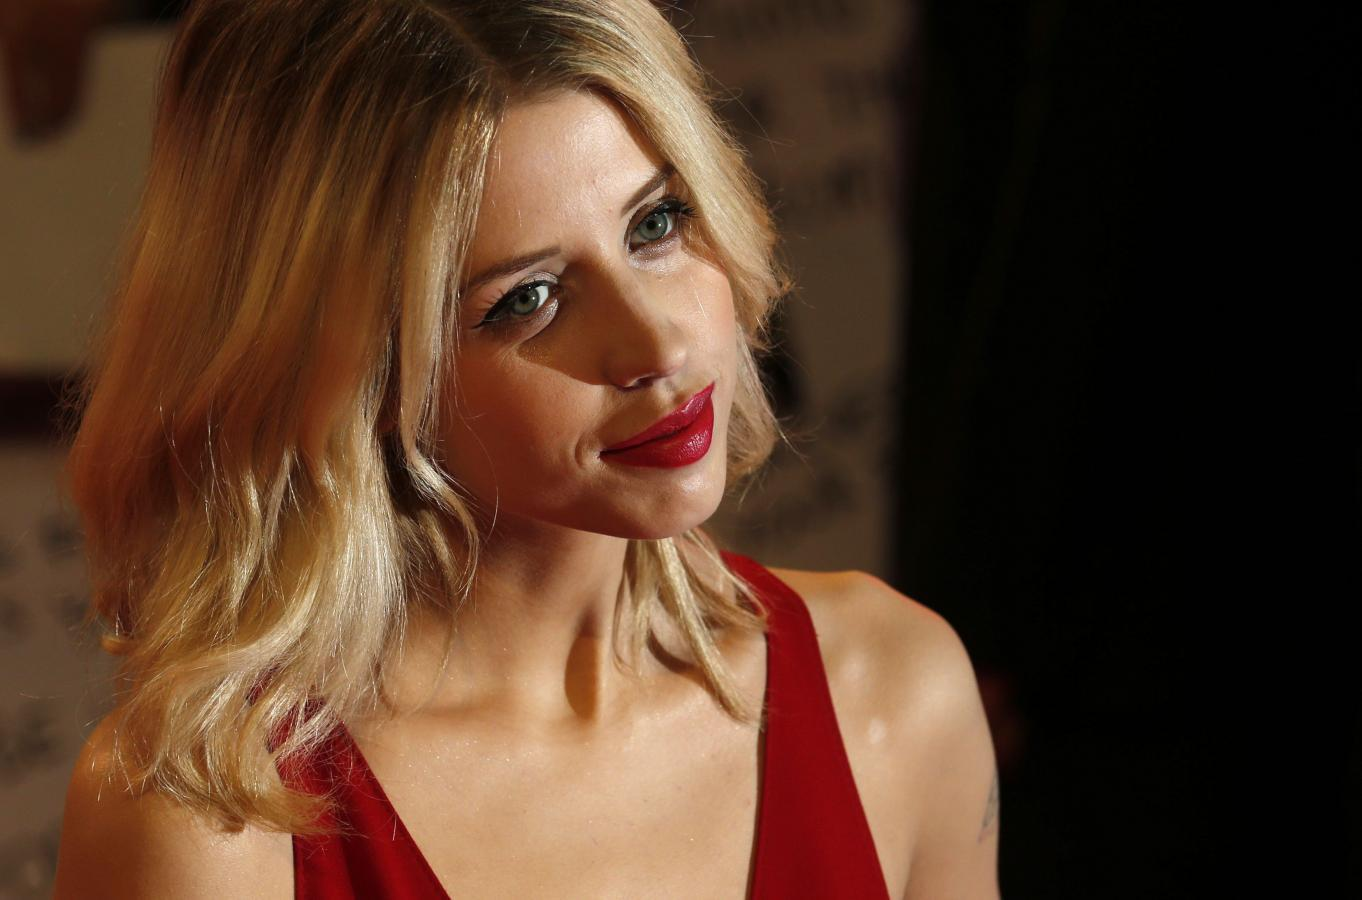 Band Aid founder's daughter Peaches Geldof dead at age 25